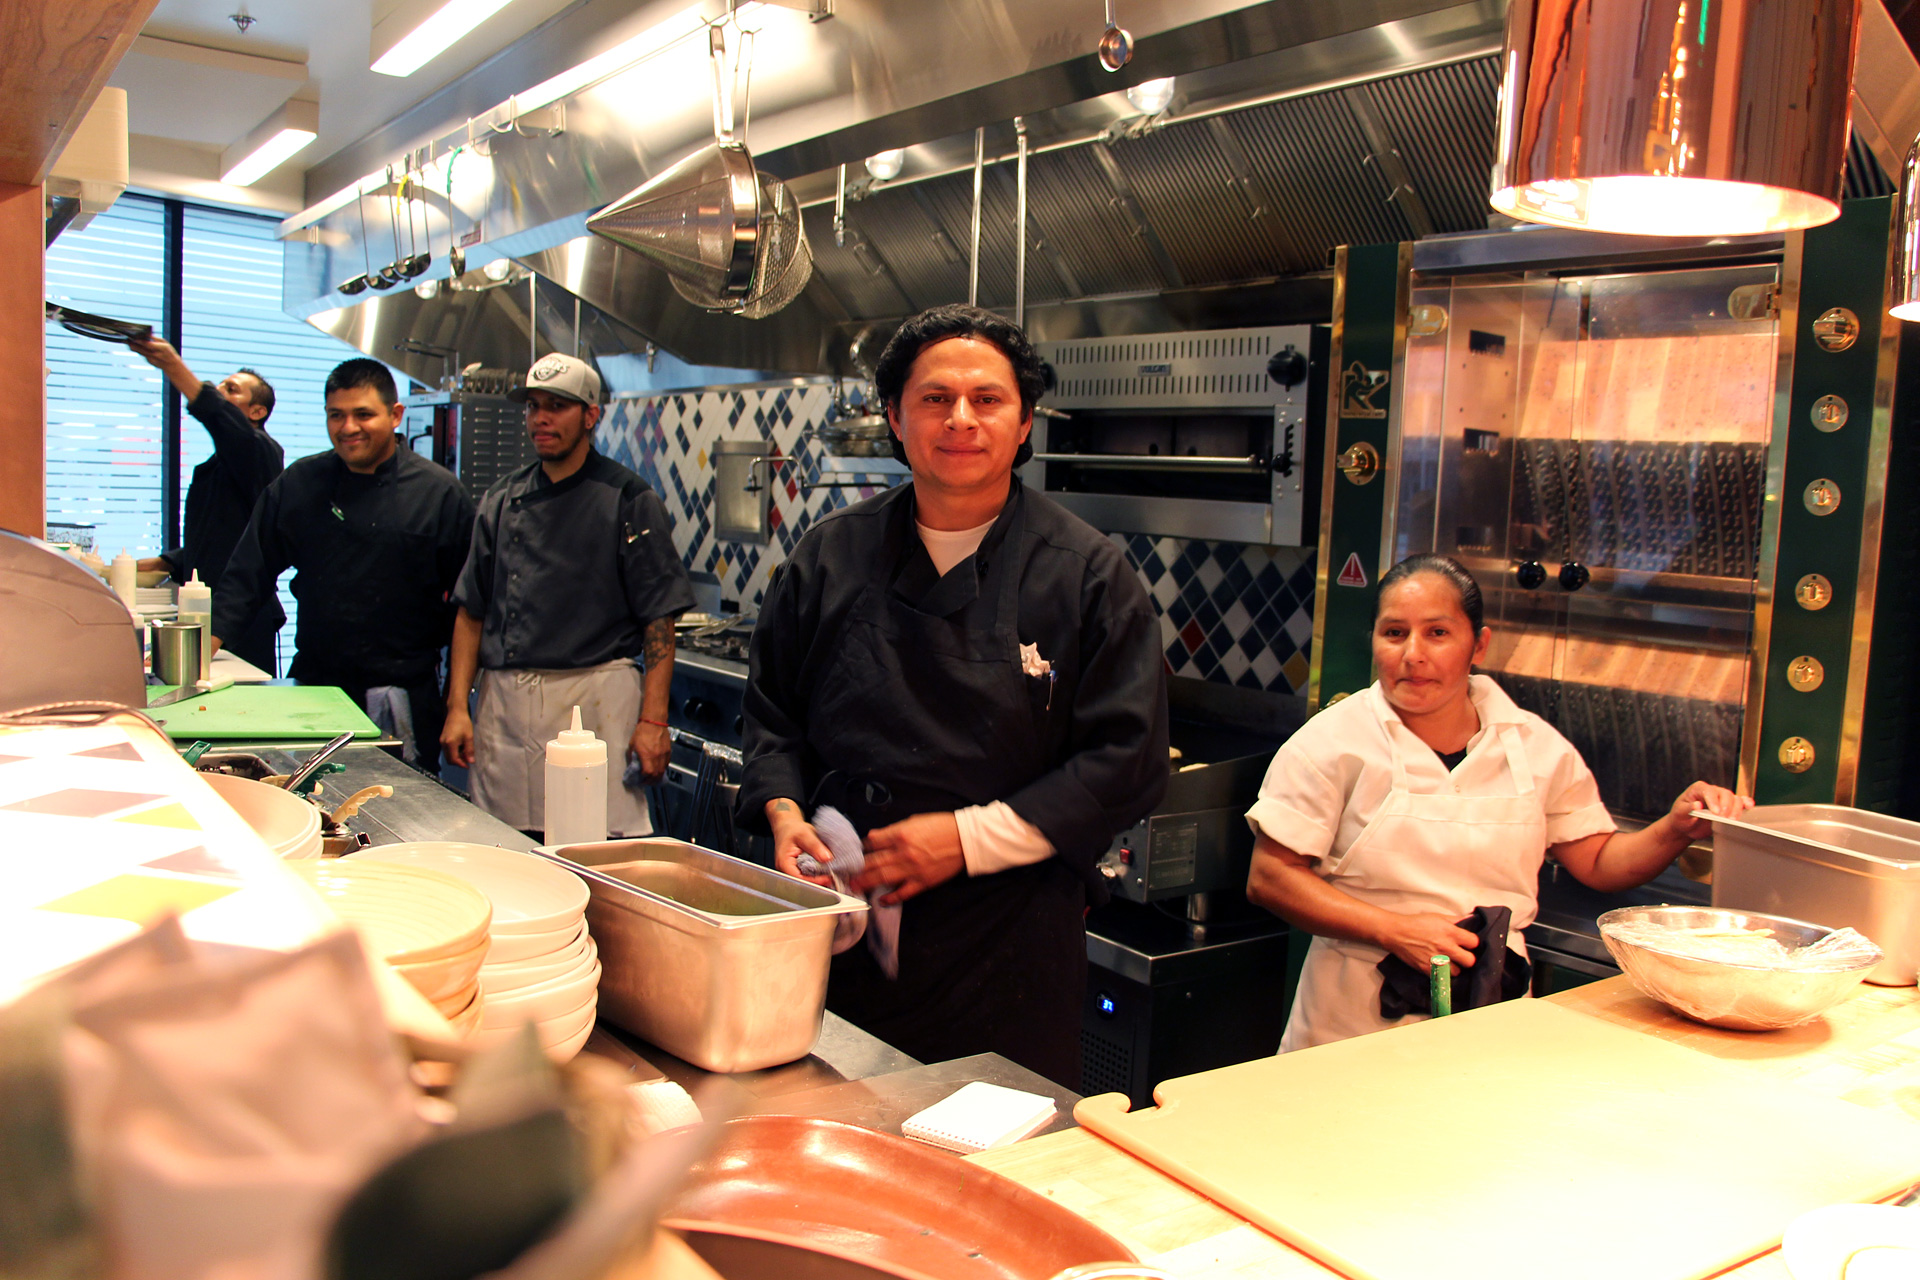 Agave Uptown's open kitchen and staff